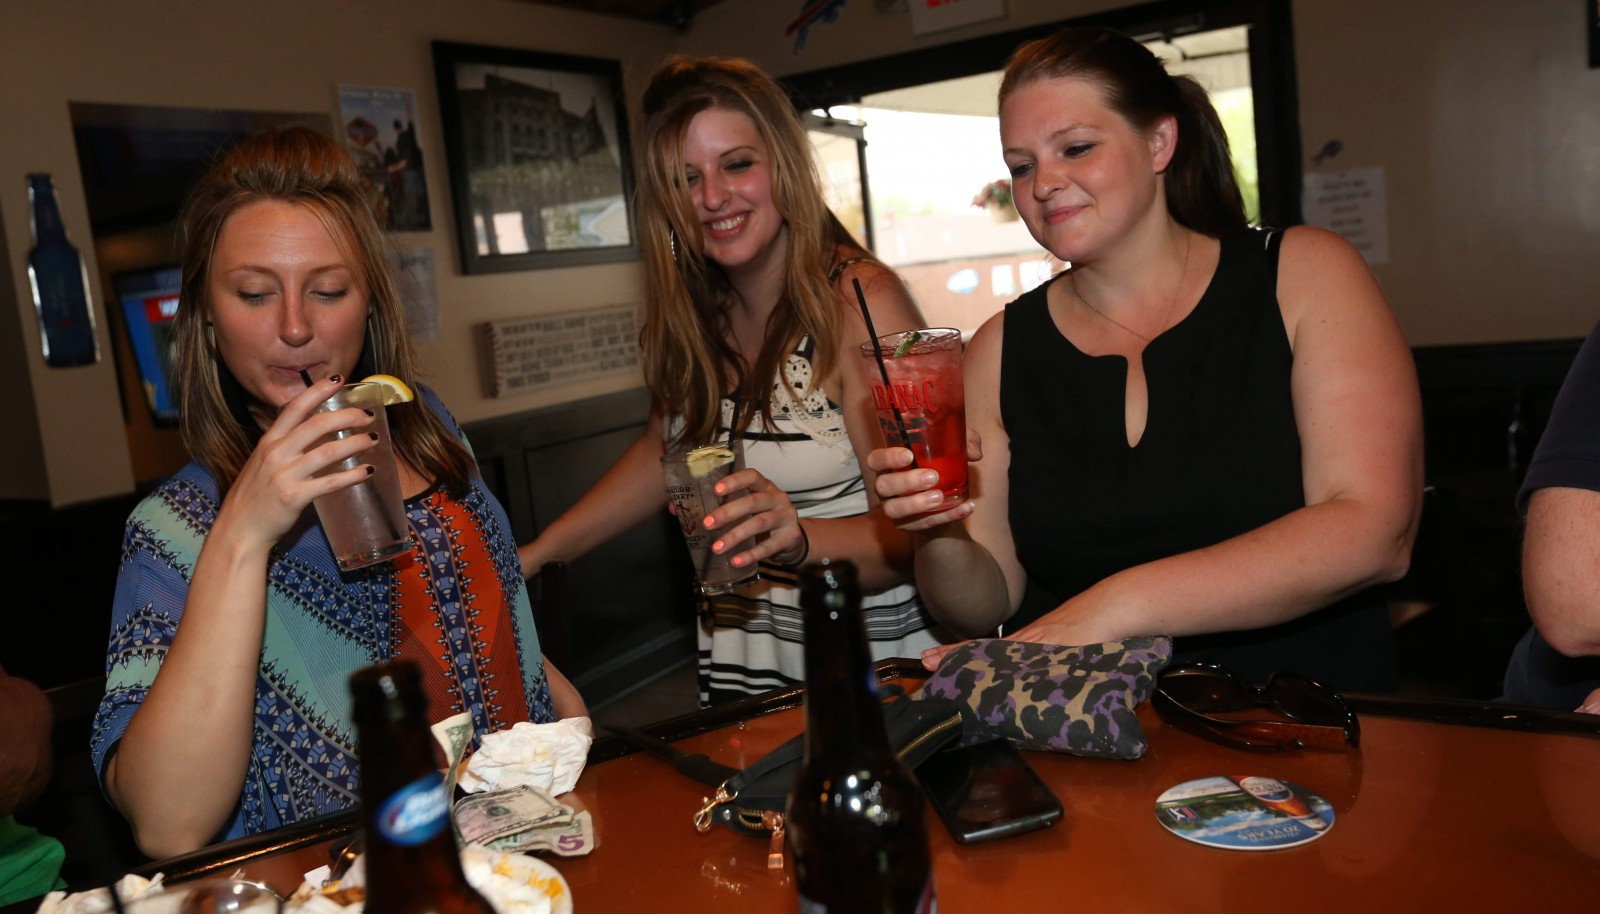 Ann Marie Damon, left, Kristen Auer and her sister Becky Auer enjoy some libations at the Press Box on Abbott Road in Lackawanna. To view a photo gallery, visit buffalonews.com.